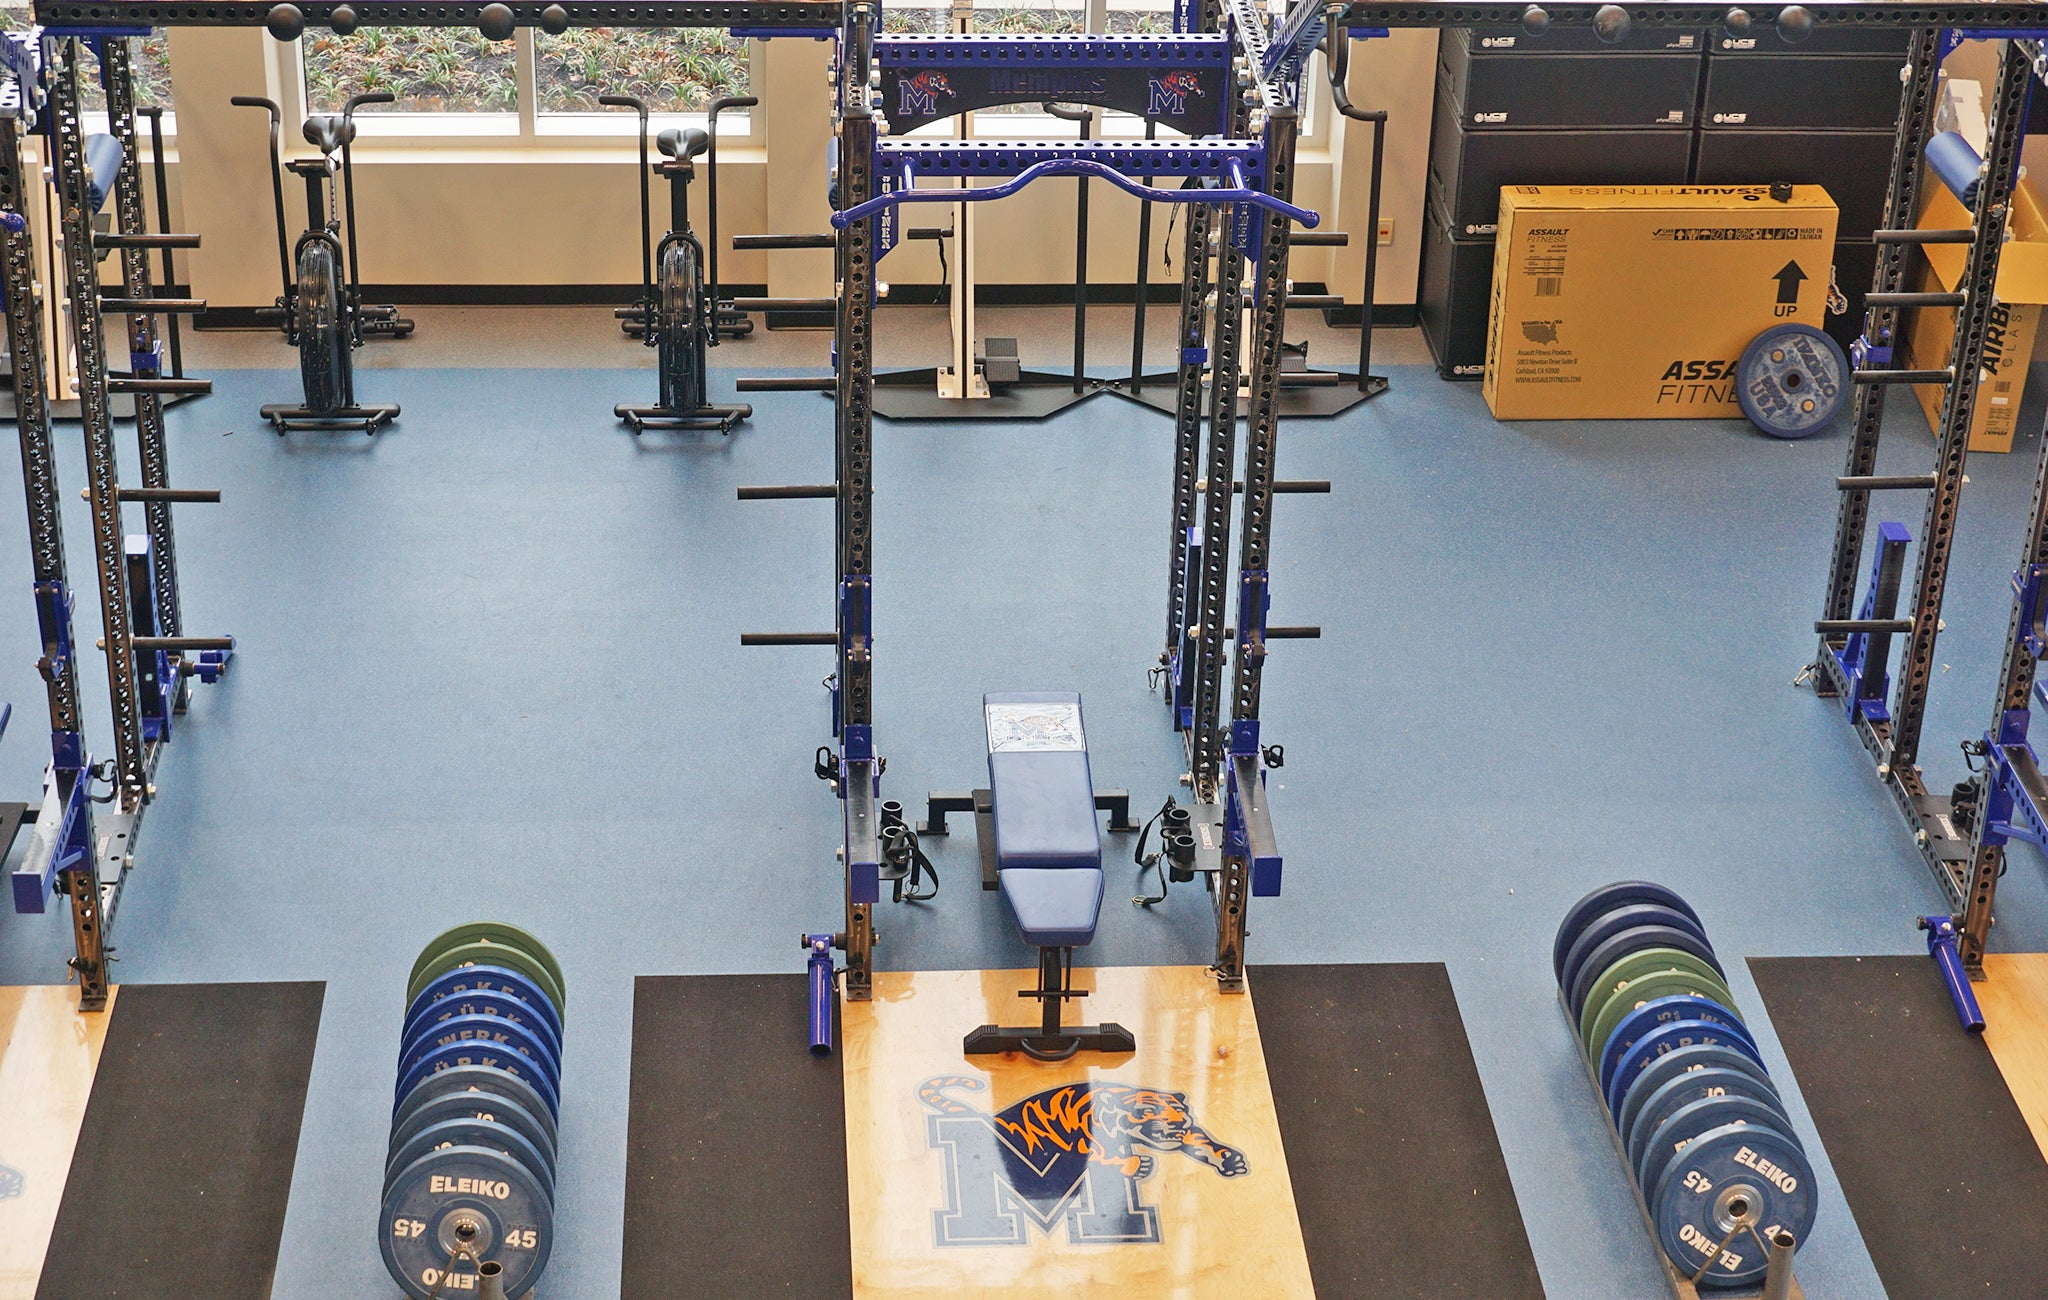 University of Memphis Basketball strength training